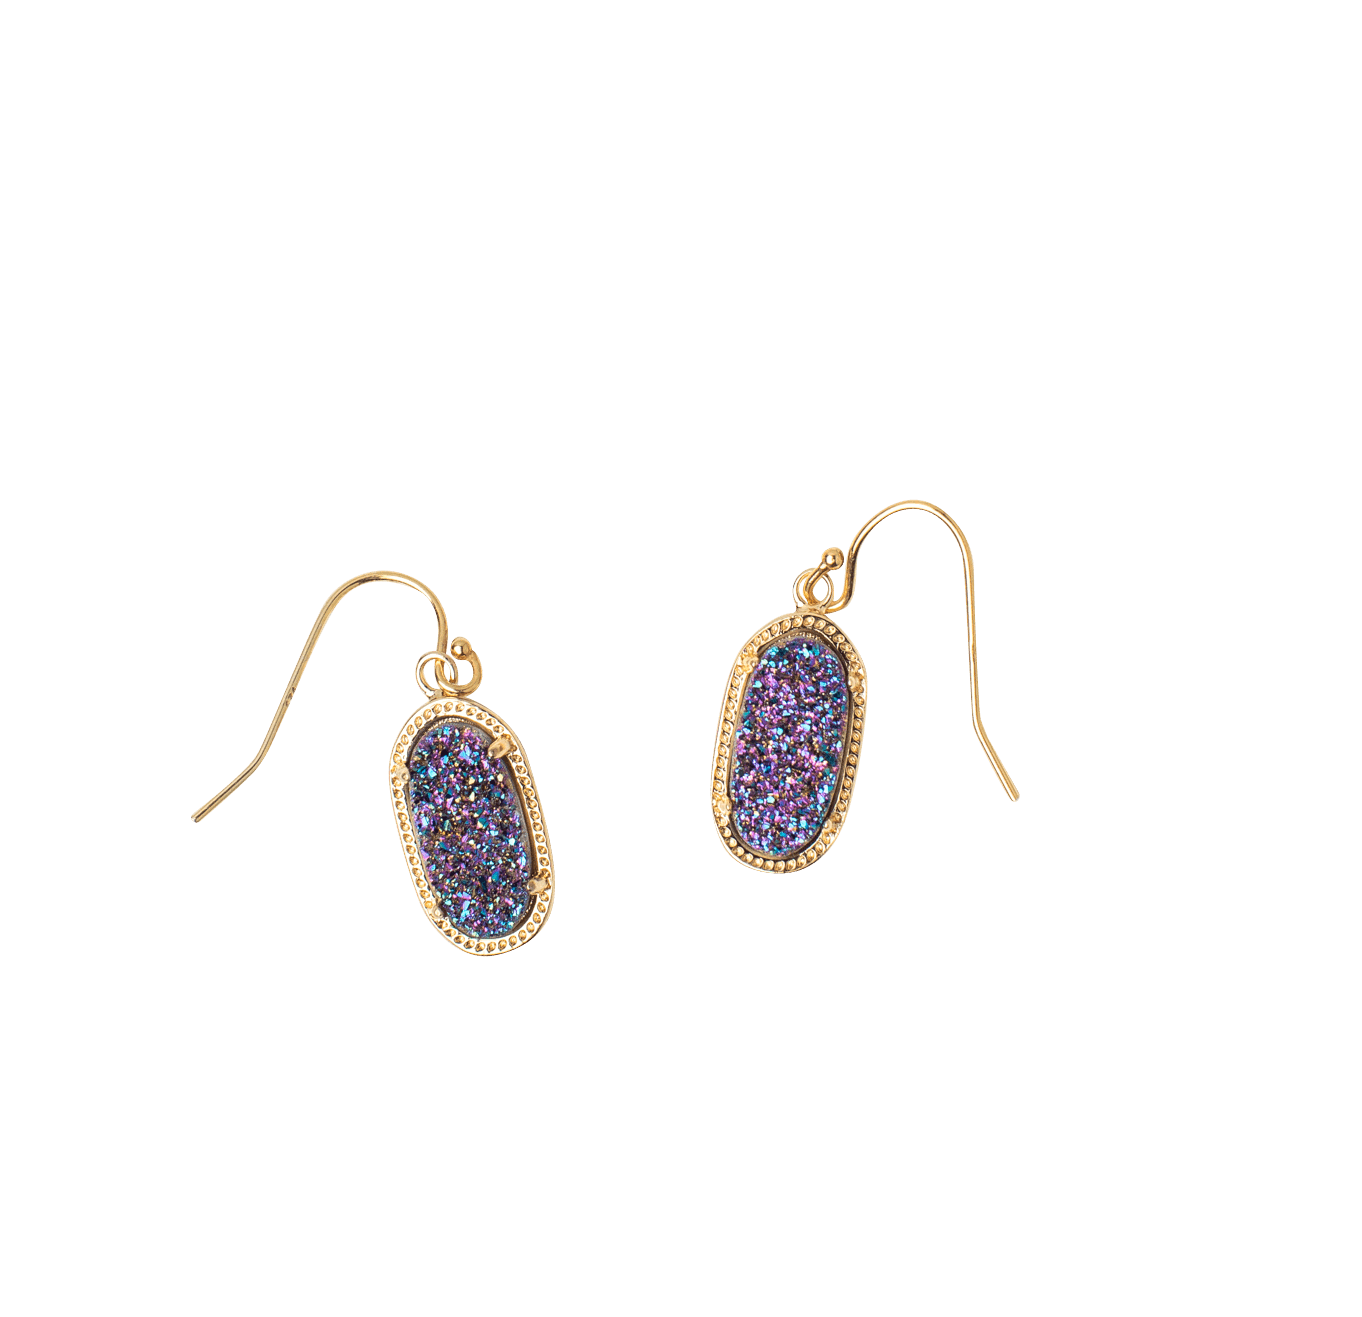 Alicia Gold Oval Druzy Earrings Over Sterling Silver Wires